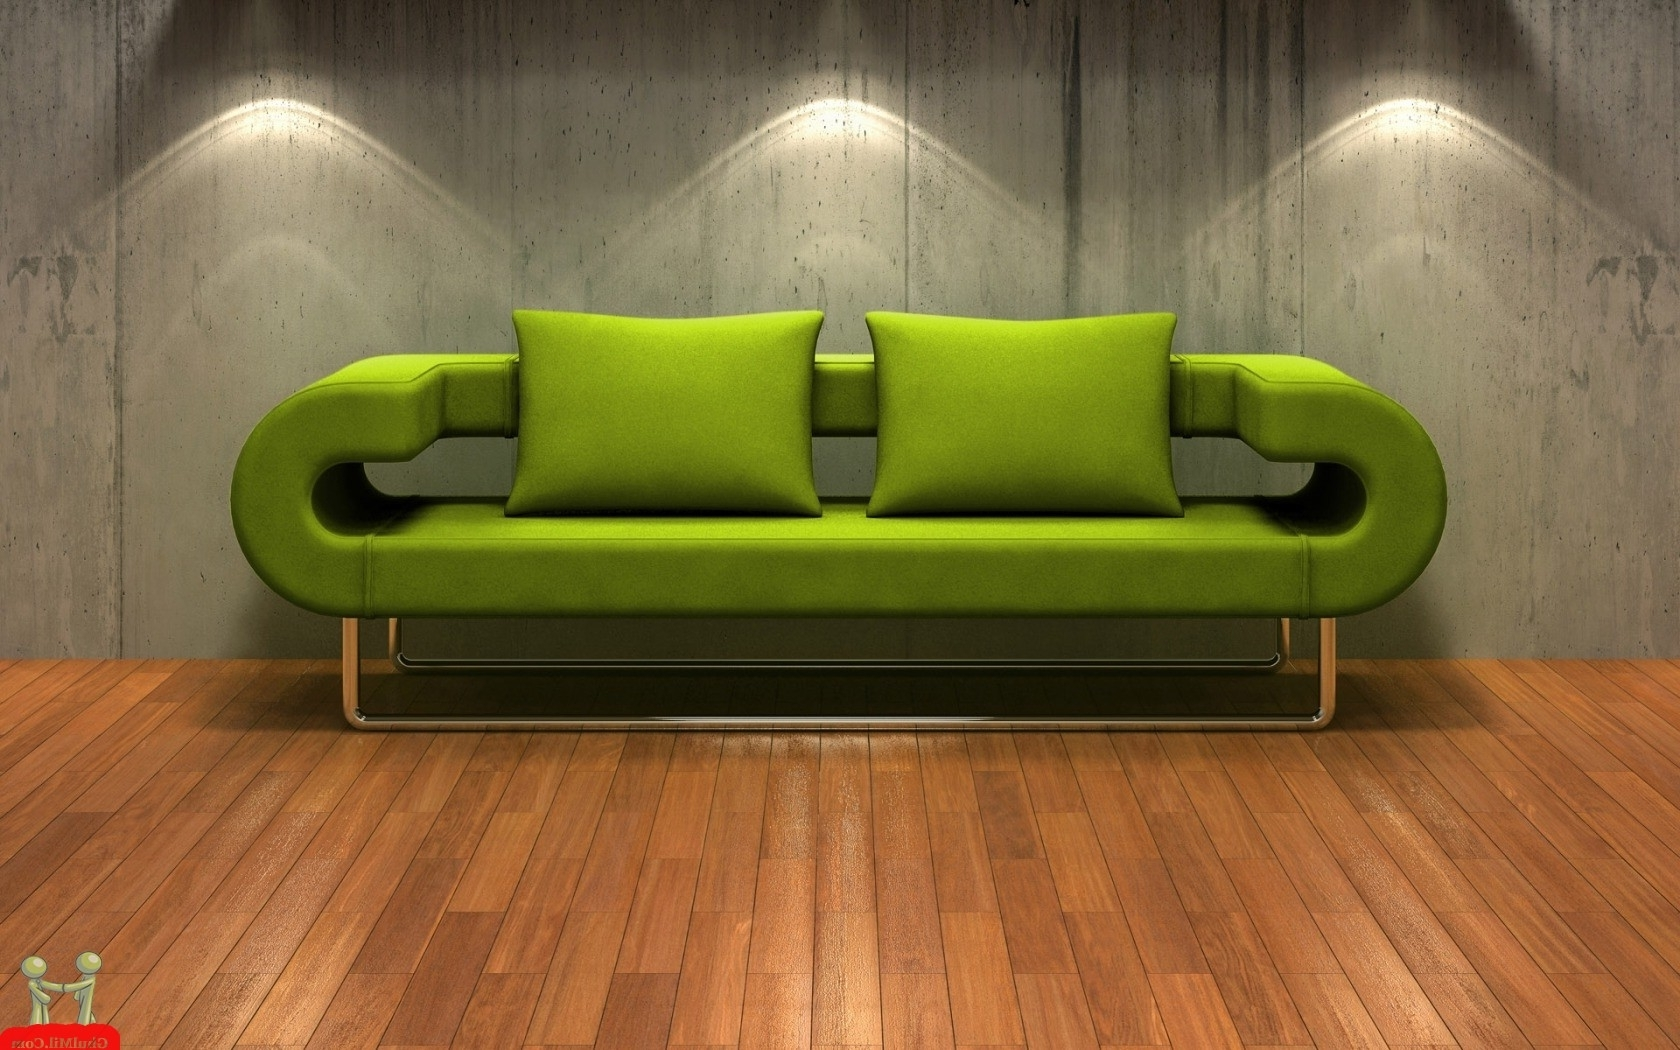 Hd Wallpapers Free Download Inside Widely Used Green Sofa Chairs (View 10 of 15)